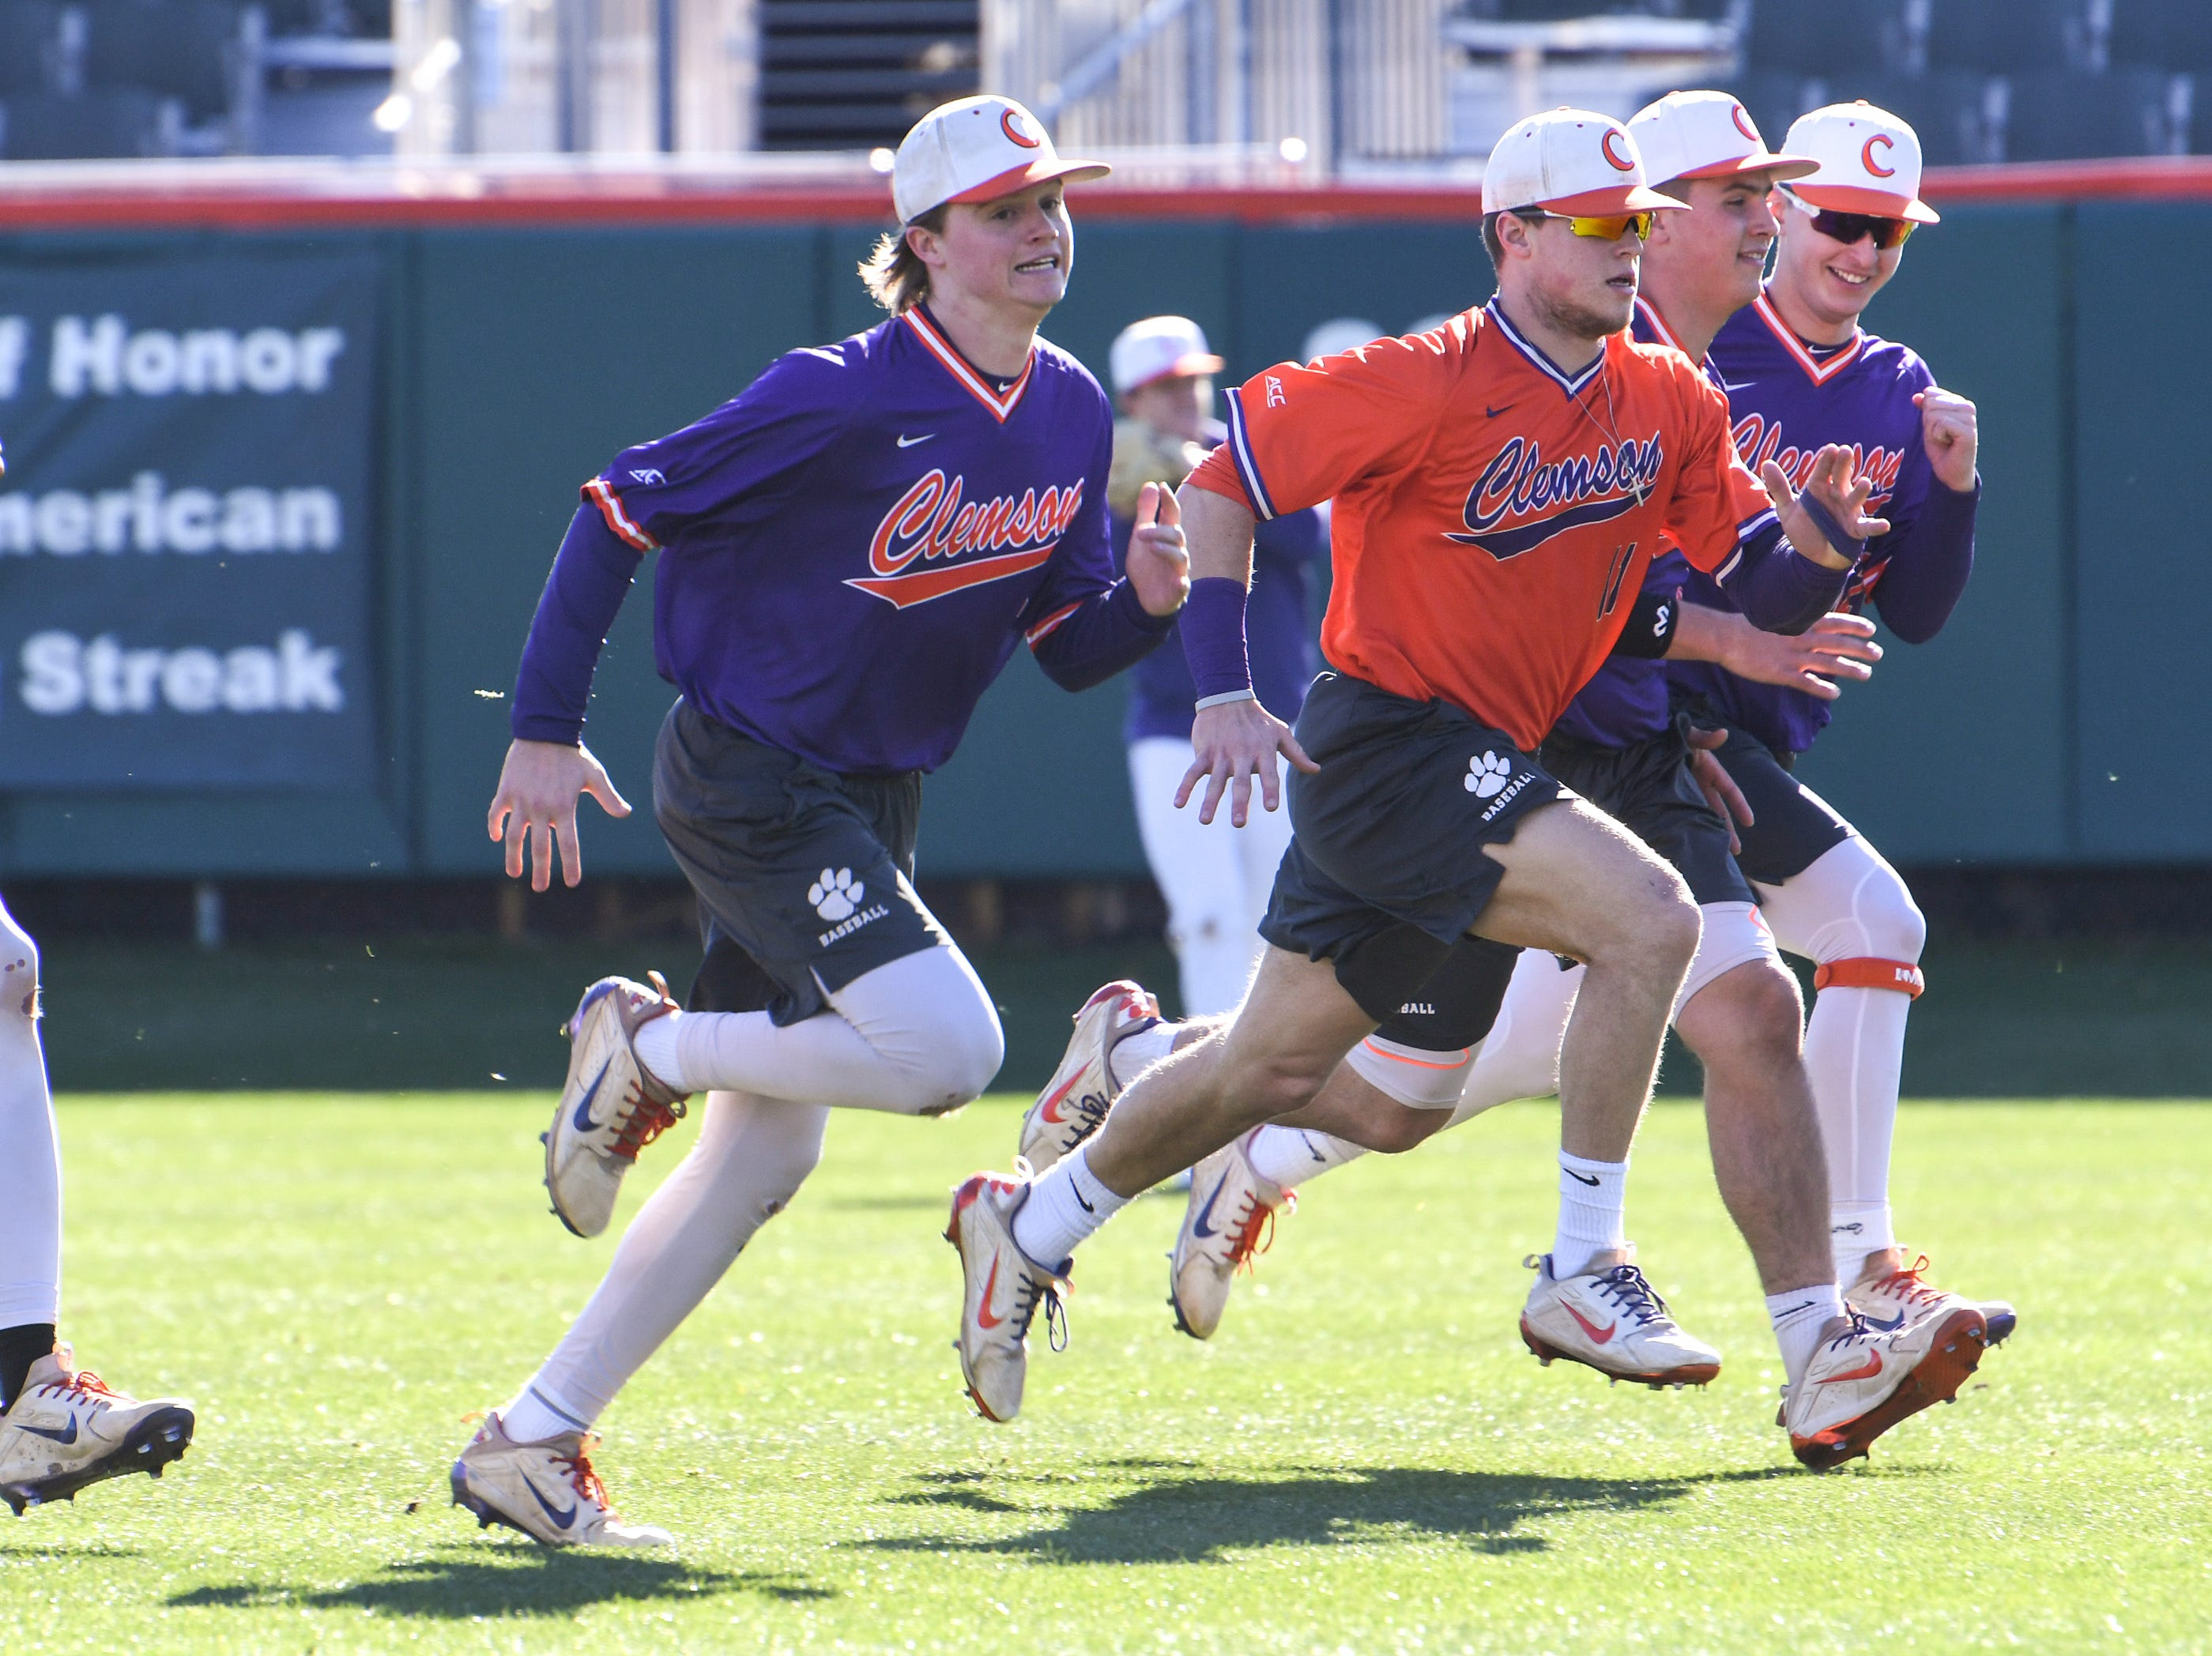 Clemson catcher Kyle Wilkie, in orange, runs with teammates during practice at Doug Kingsmore Stadium in Clemson Friday.